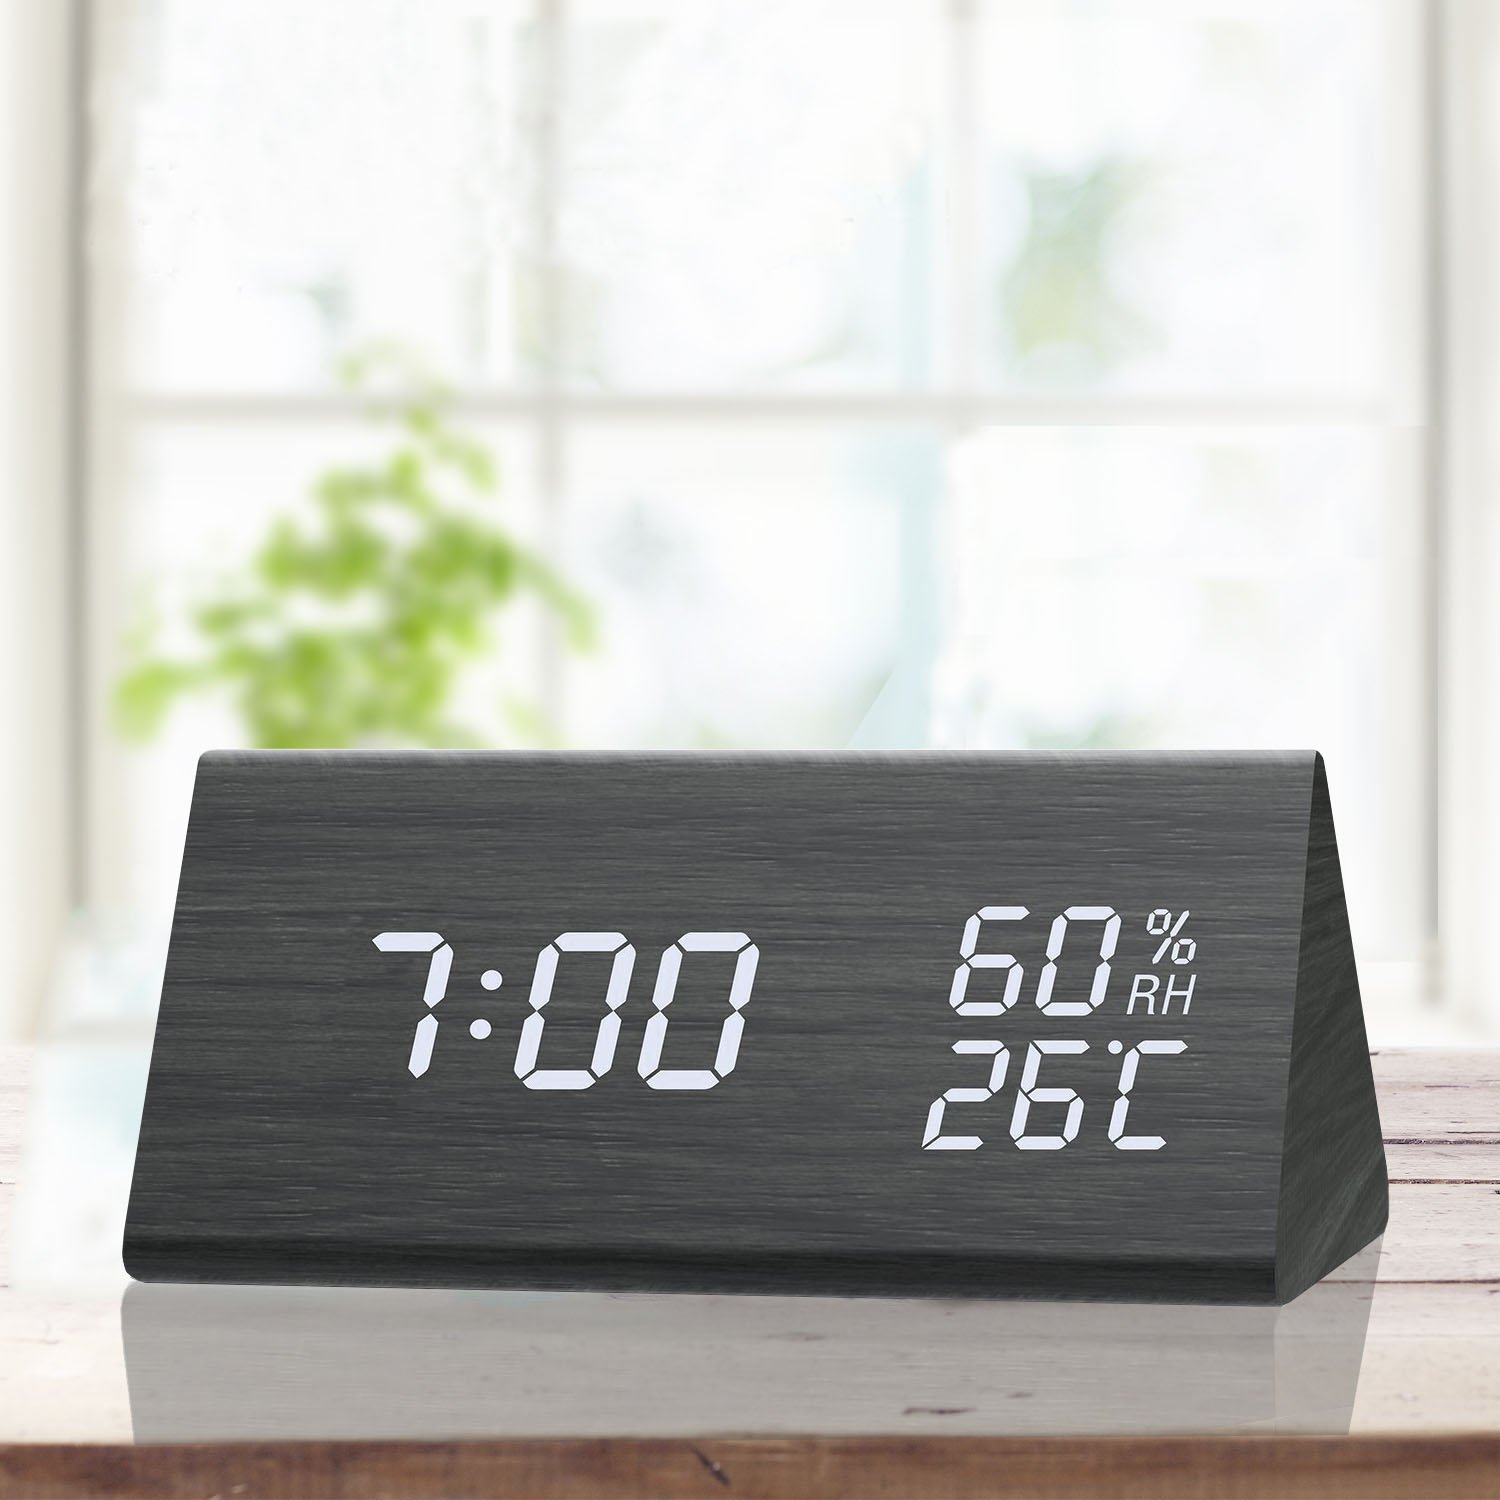 TooTa Digital Clock, 3 Alarm Settings, with Wooden Electronic LED Time Display, Dual Temperature & Humidity Detect, Ideal for Bedroom, Bedside Kids, Batteries not Needed, Black Digital Alarm Clock